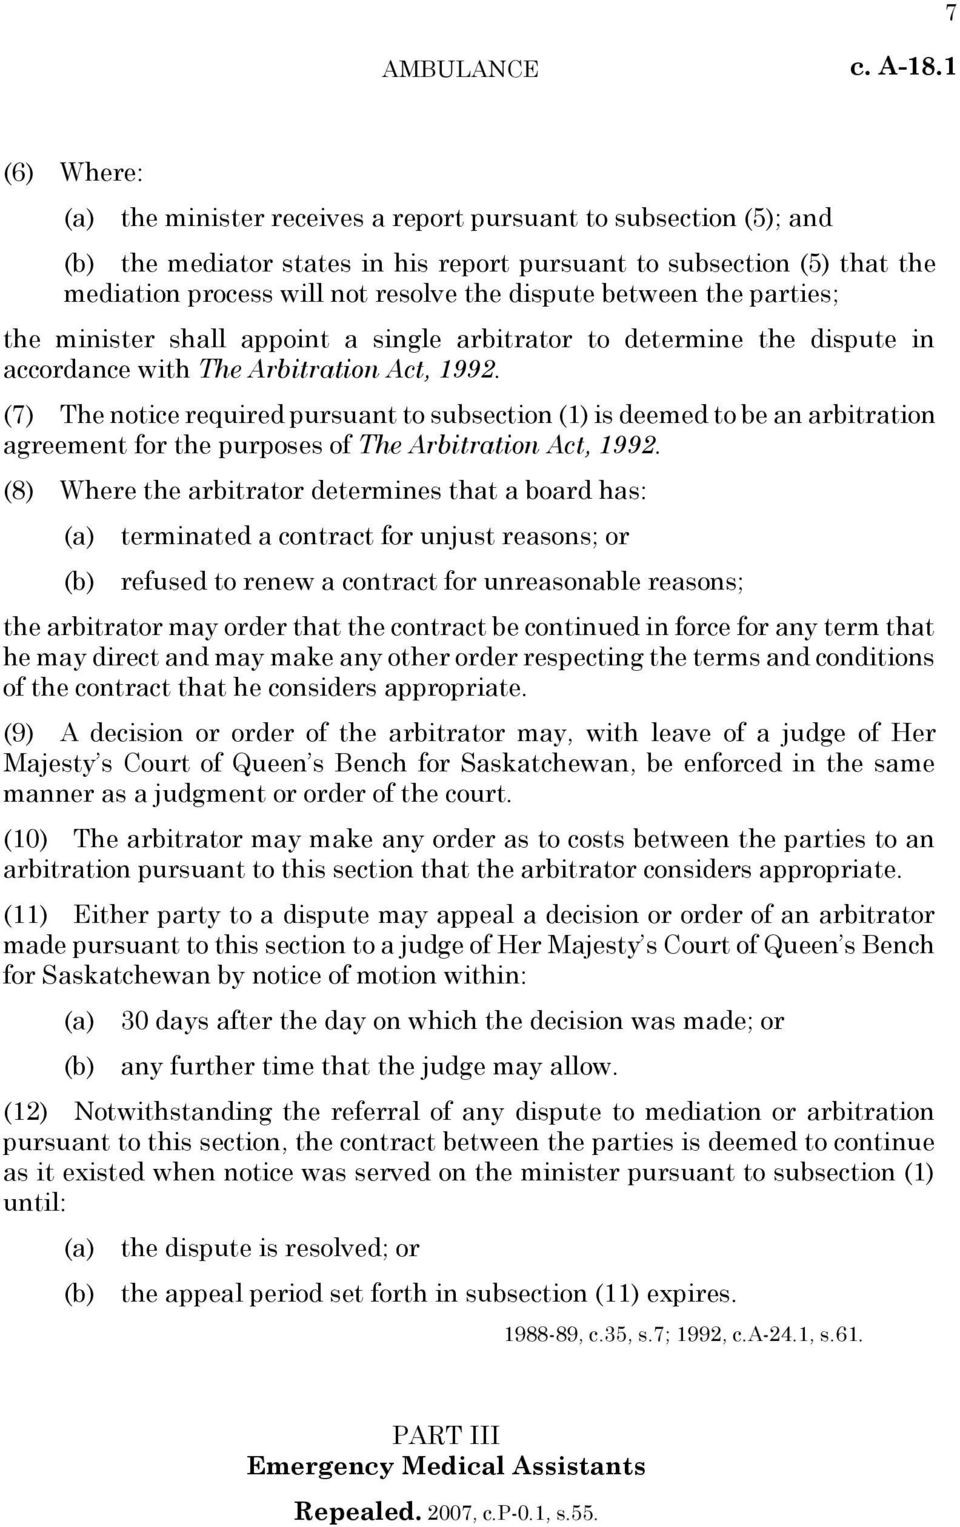 dispute between the parties; the minister shall appoint a single arbitrator to determine the dispute in accordance with The Arbitration Act, 1992.